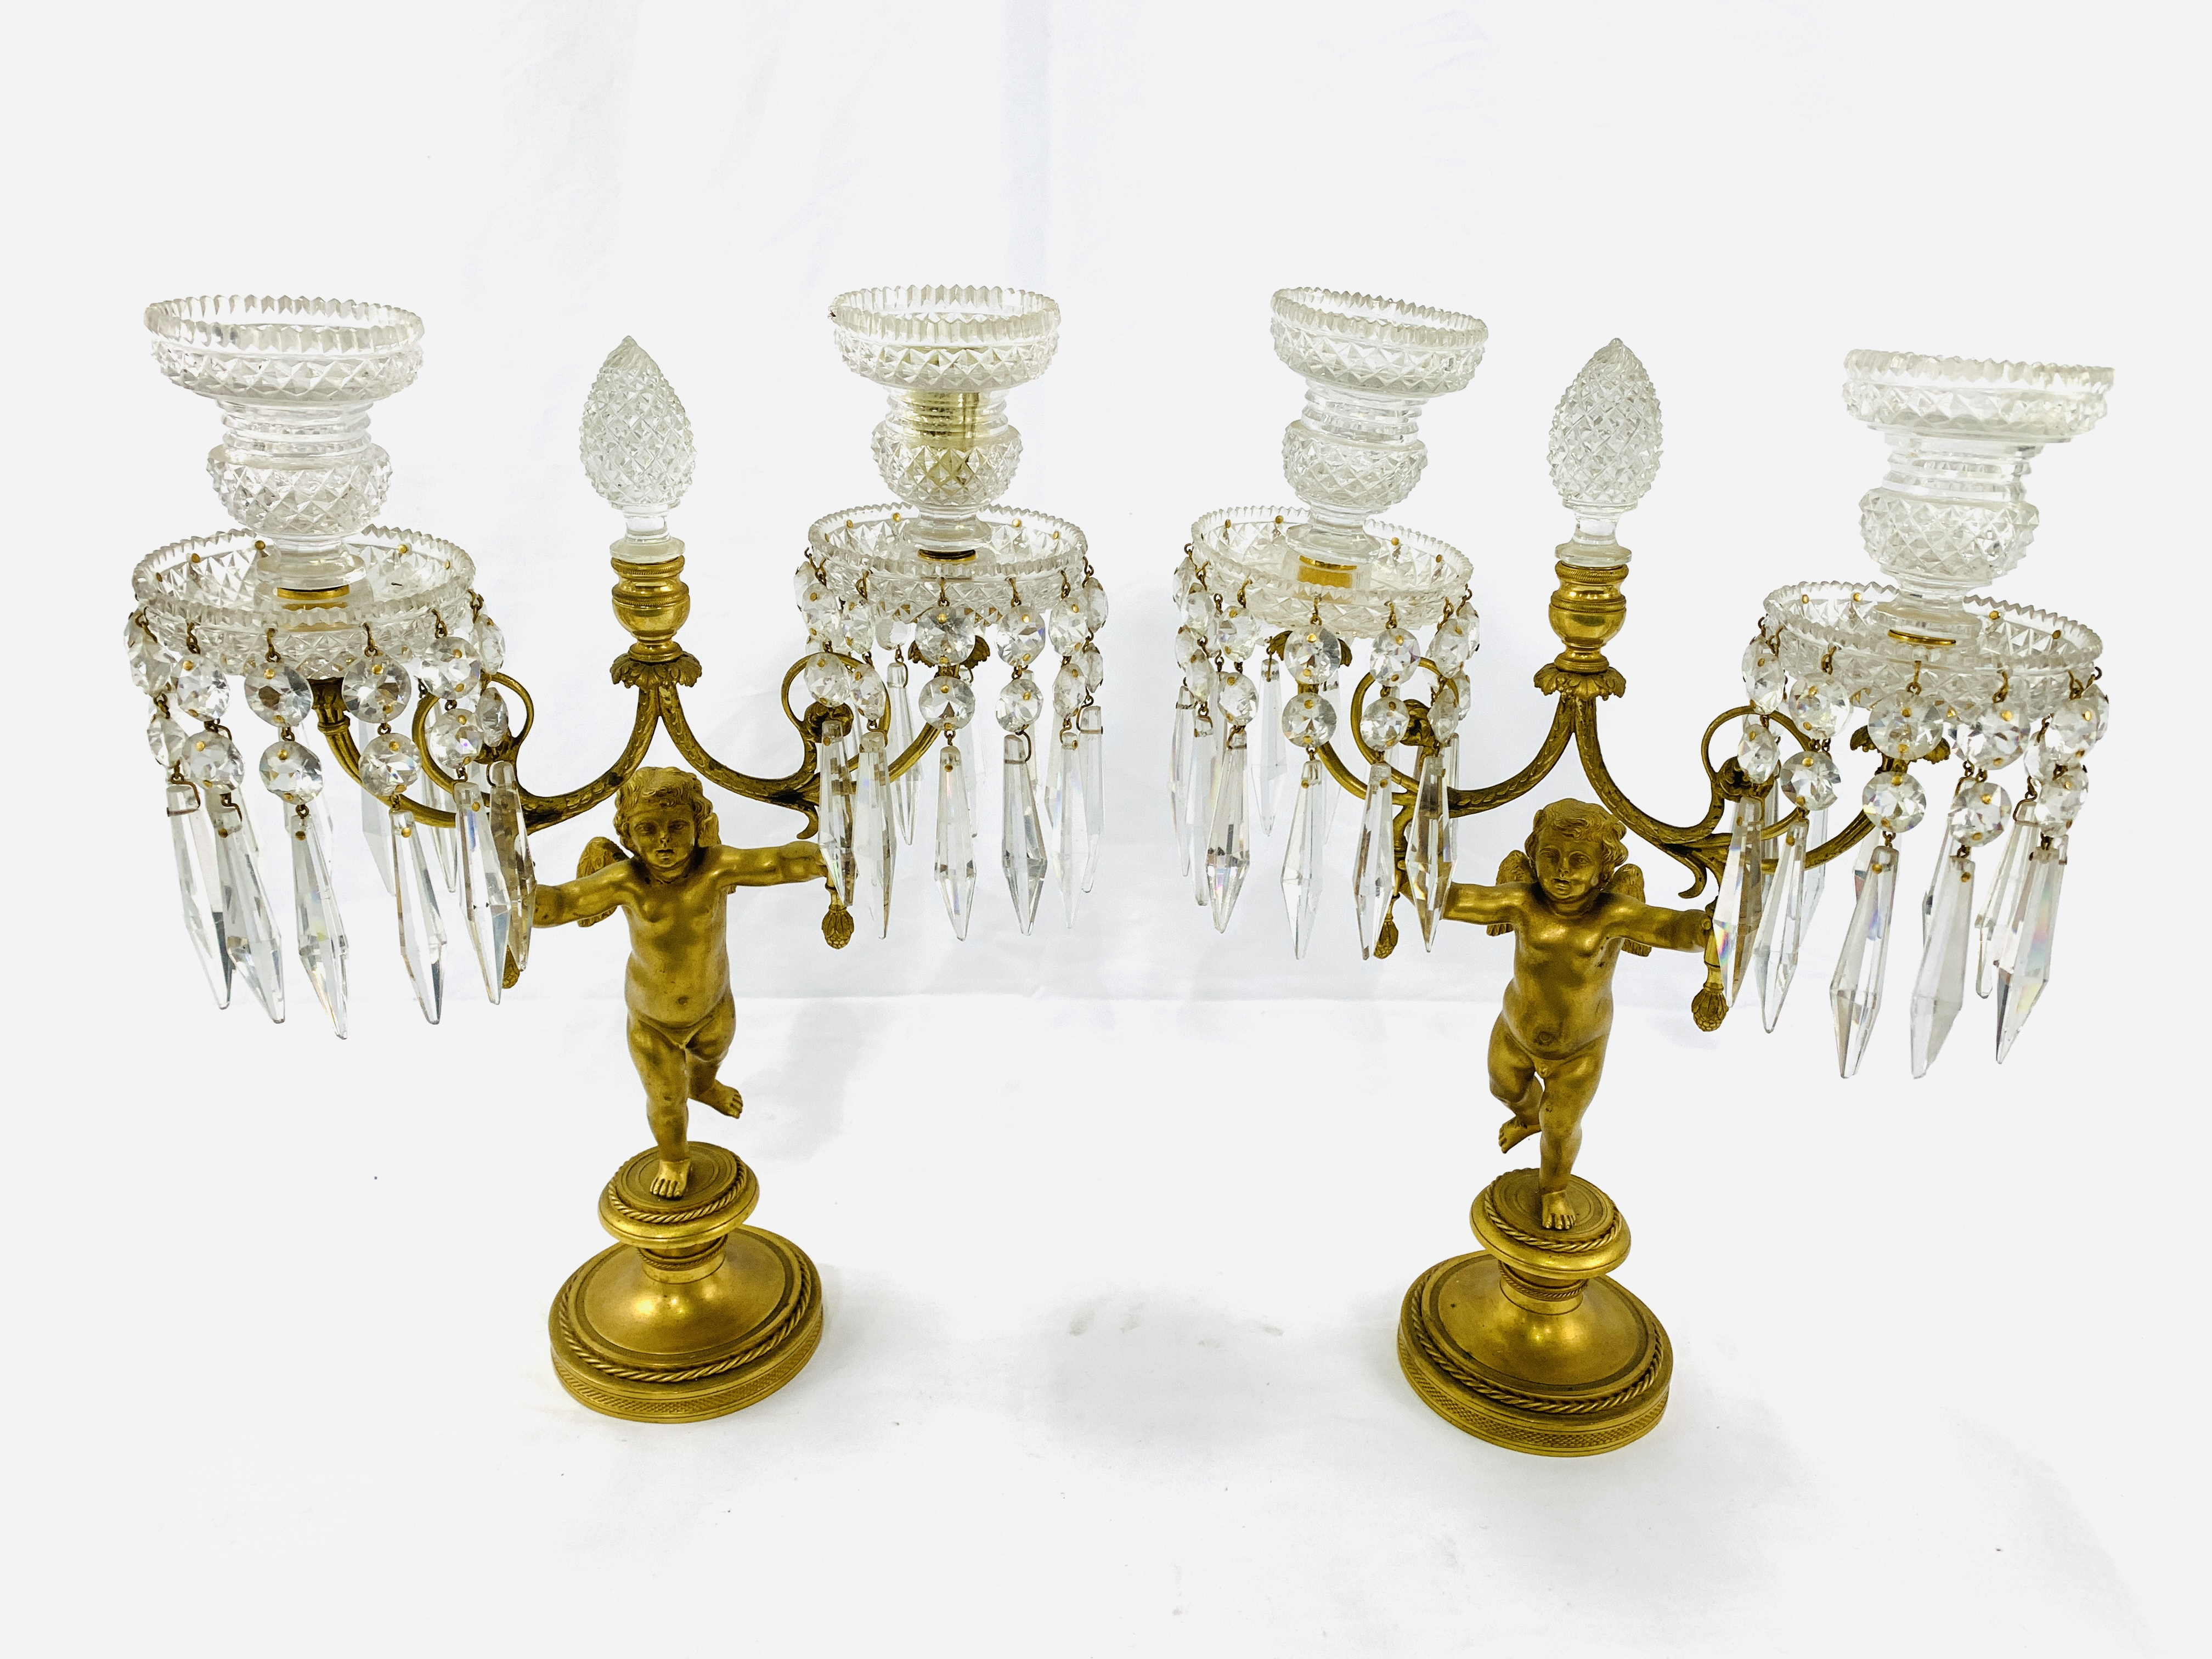 A pair of early 19th Century figural putti gilt bronze and crystal glass candelabra - Image 2 of 4